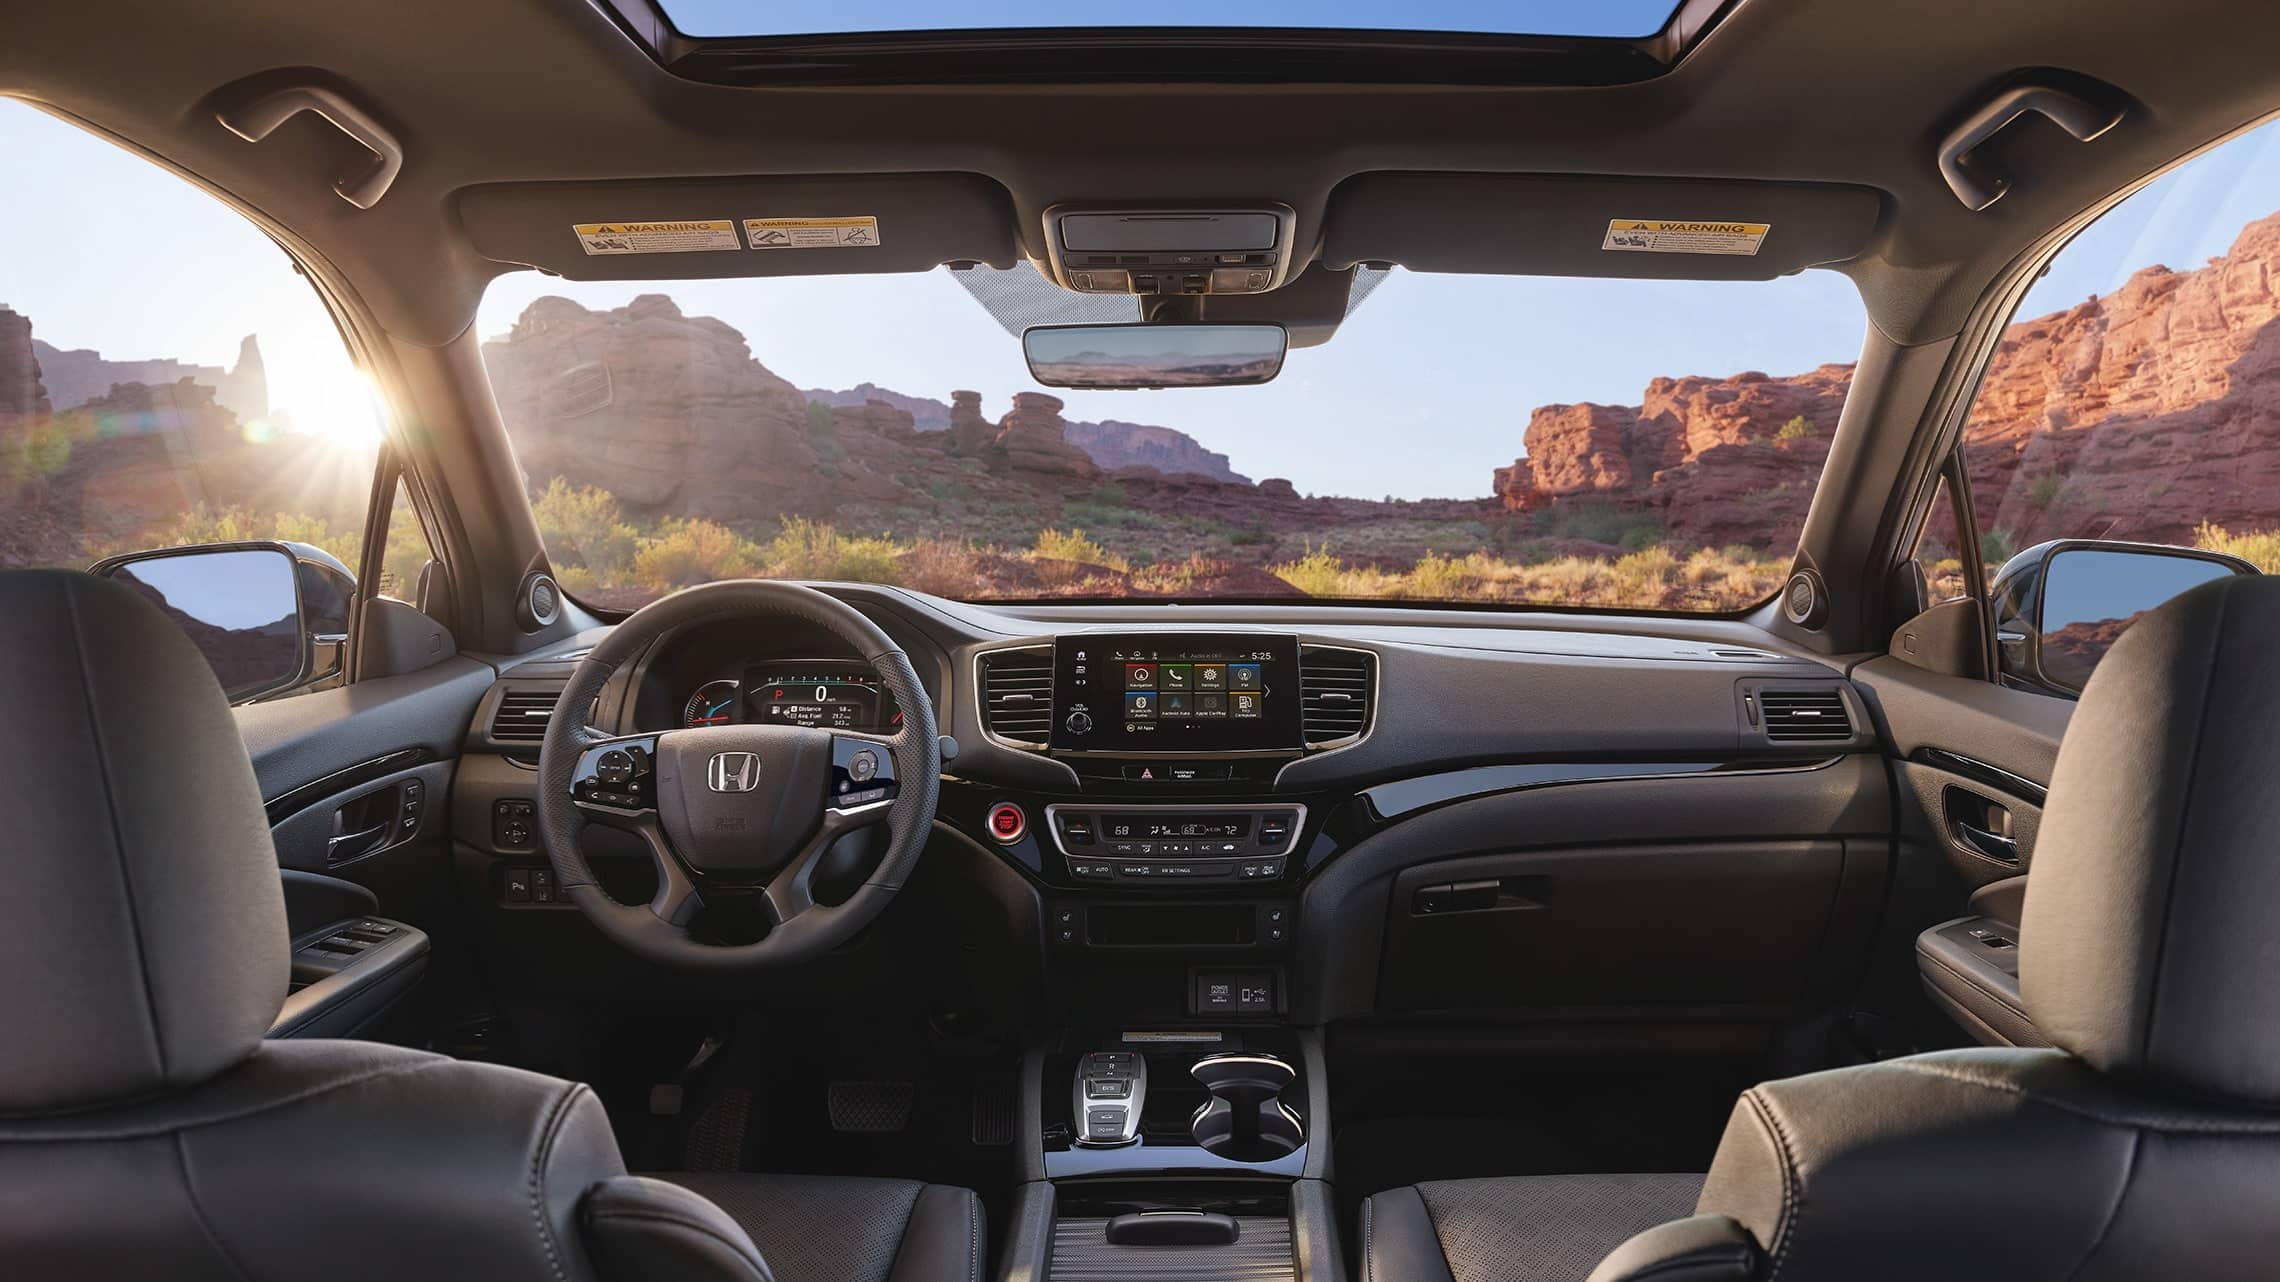 2019 Honda Passport Elite interior view with Black Leather interior showing the major instrument panel, featuring Apple CarPlay™ integration on the Display Audio touch-screen.